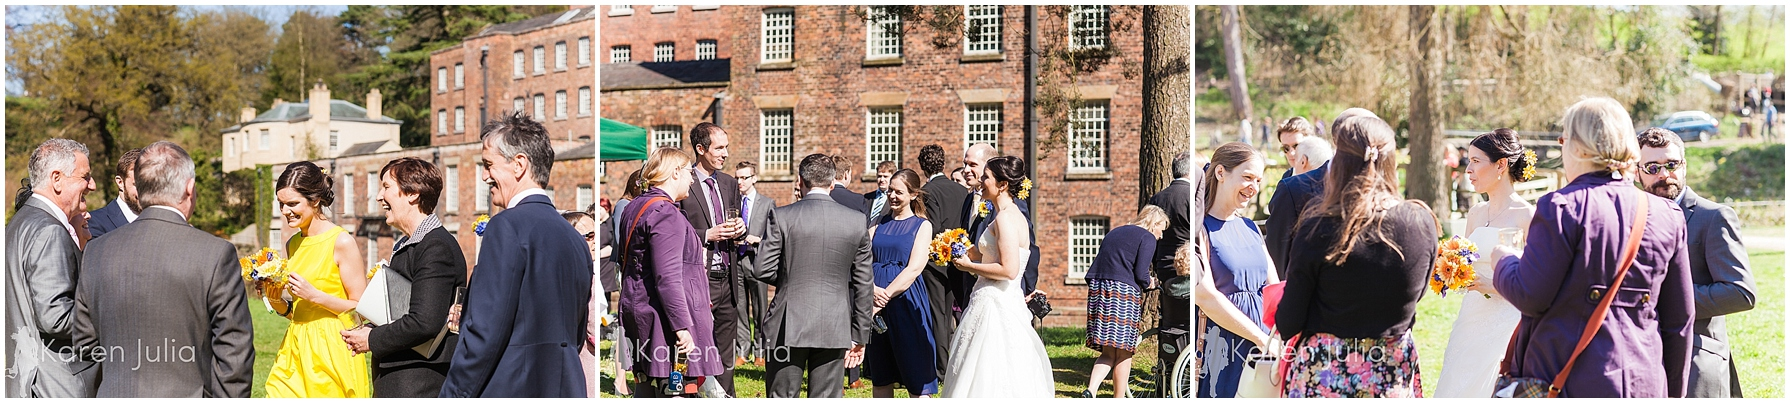 Quarry Bank Mill wedding reception on grass